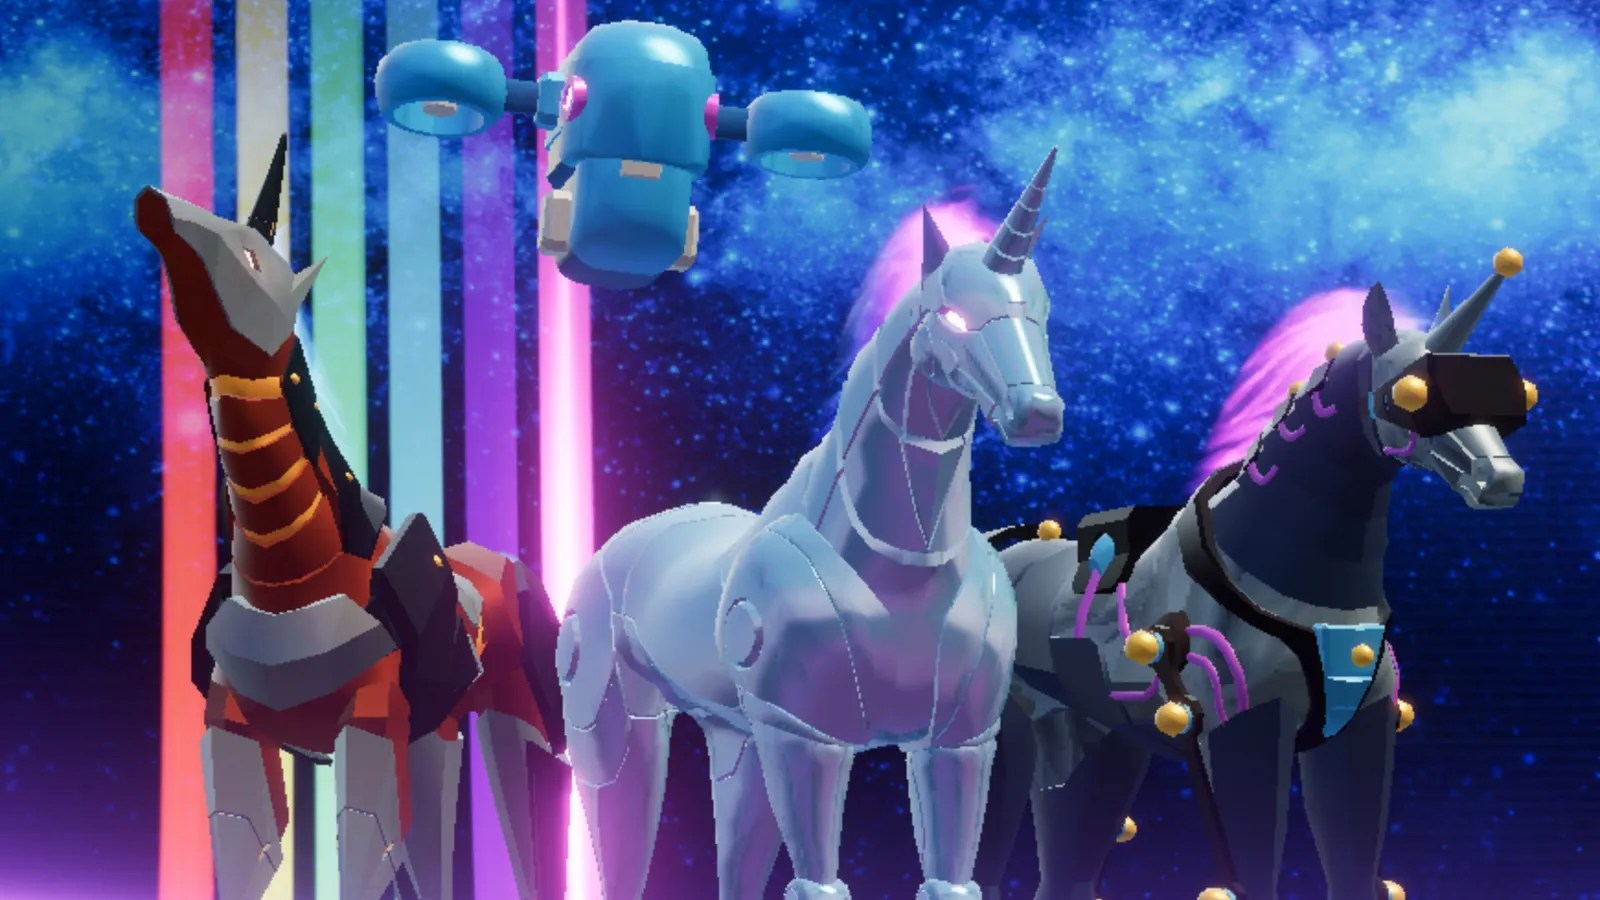 Free Animated Fall Wallpaper Robot Unicorn Attack Isn T Screwing Around This Time